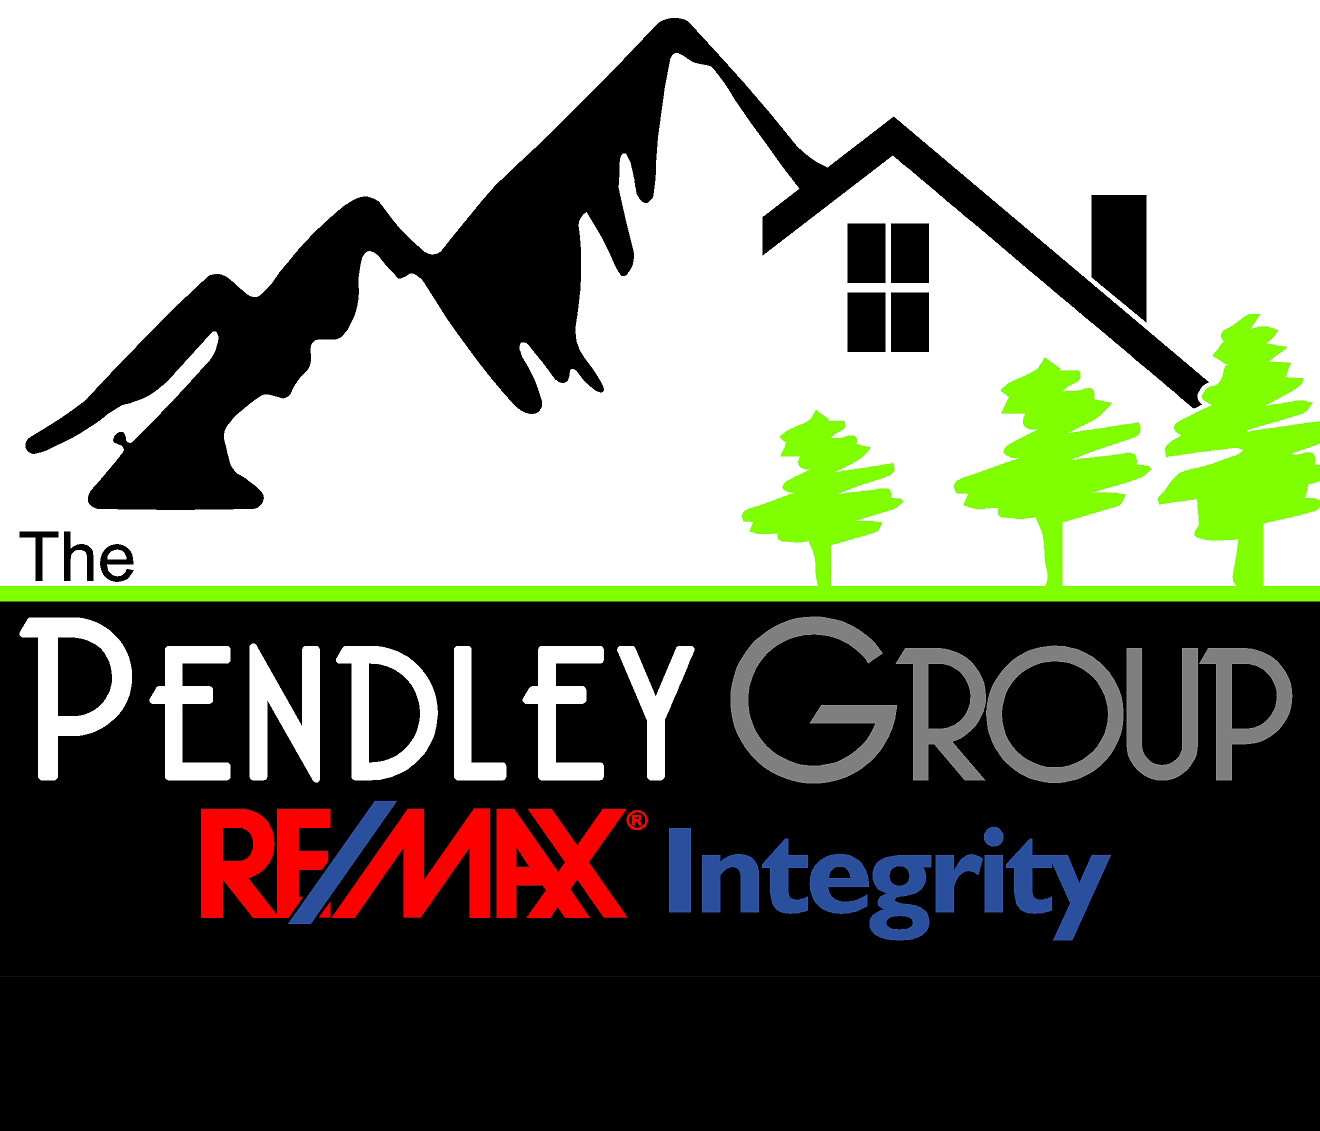 Pendley Group - Remax